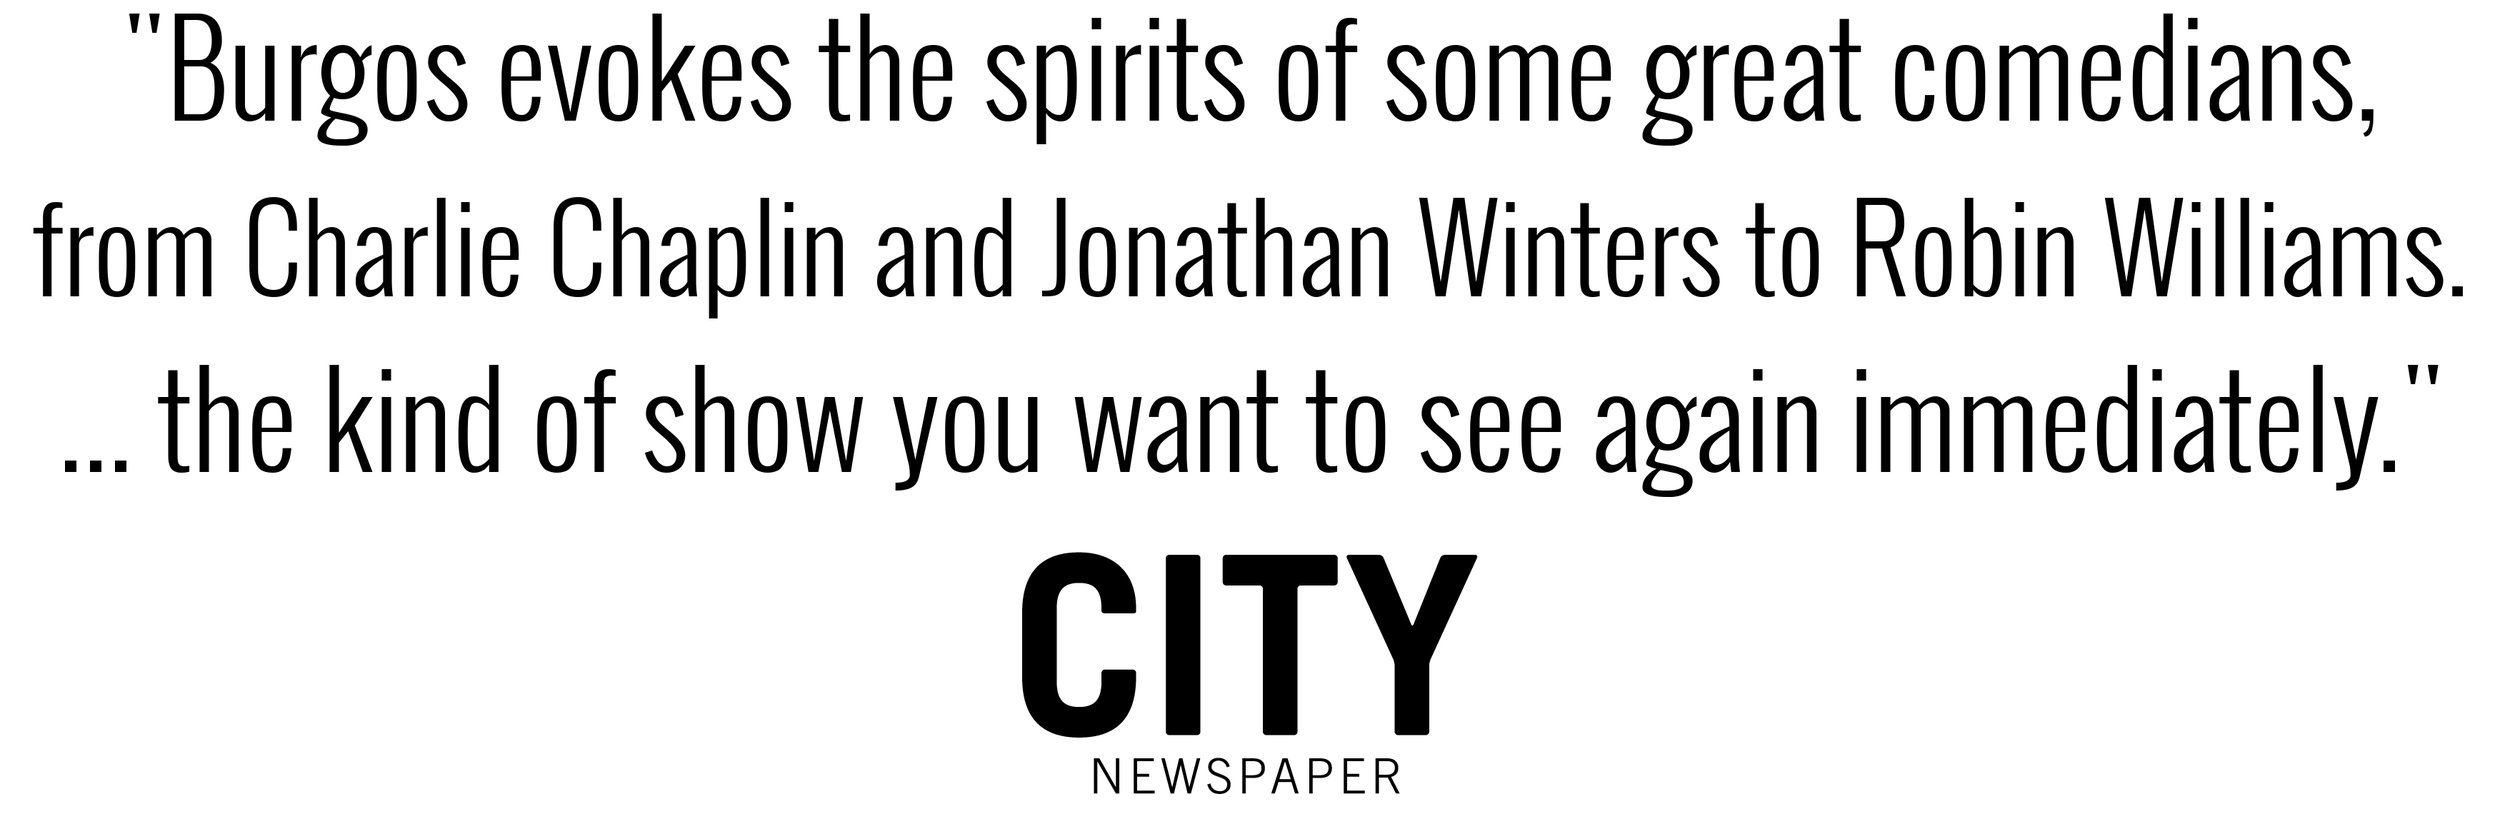 Rochester City Newspaper quote.jpg